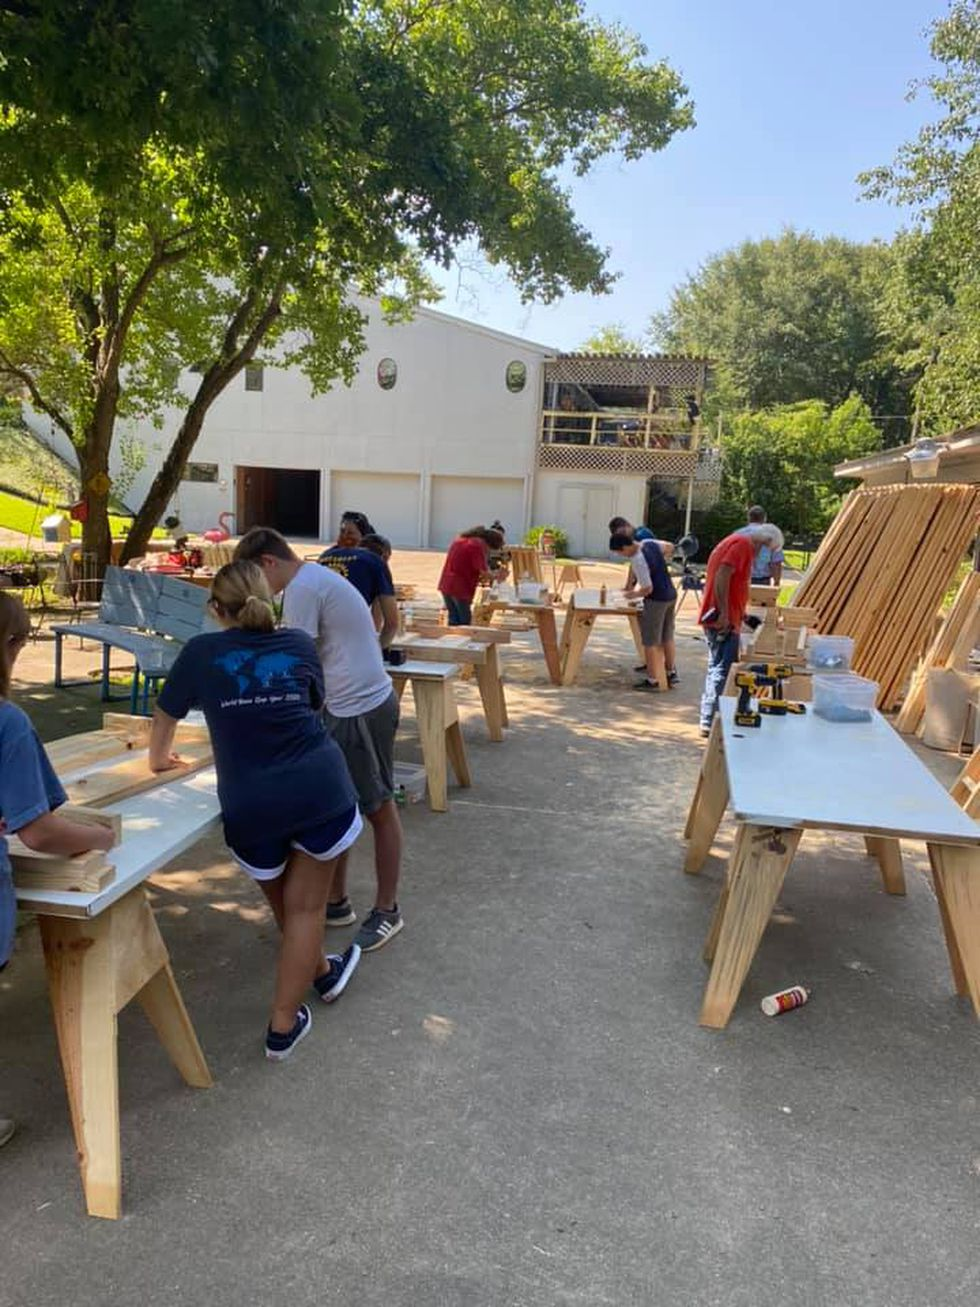 Volunteers work on dozens of beds during small August 2020 bed building event.